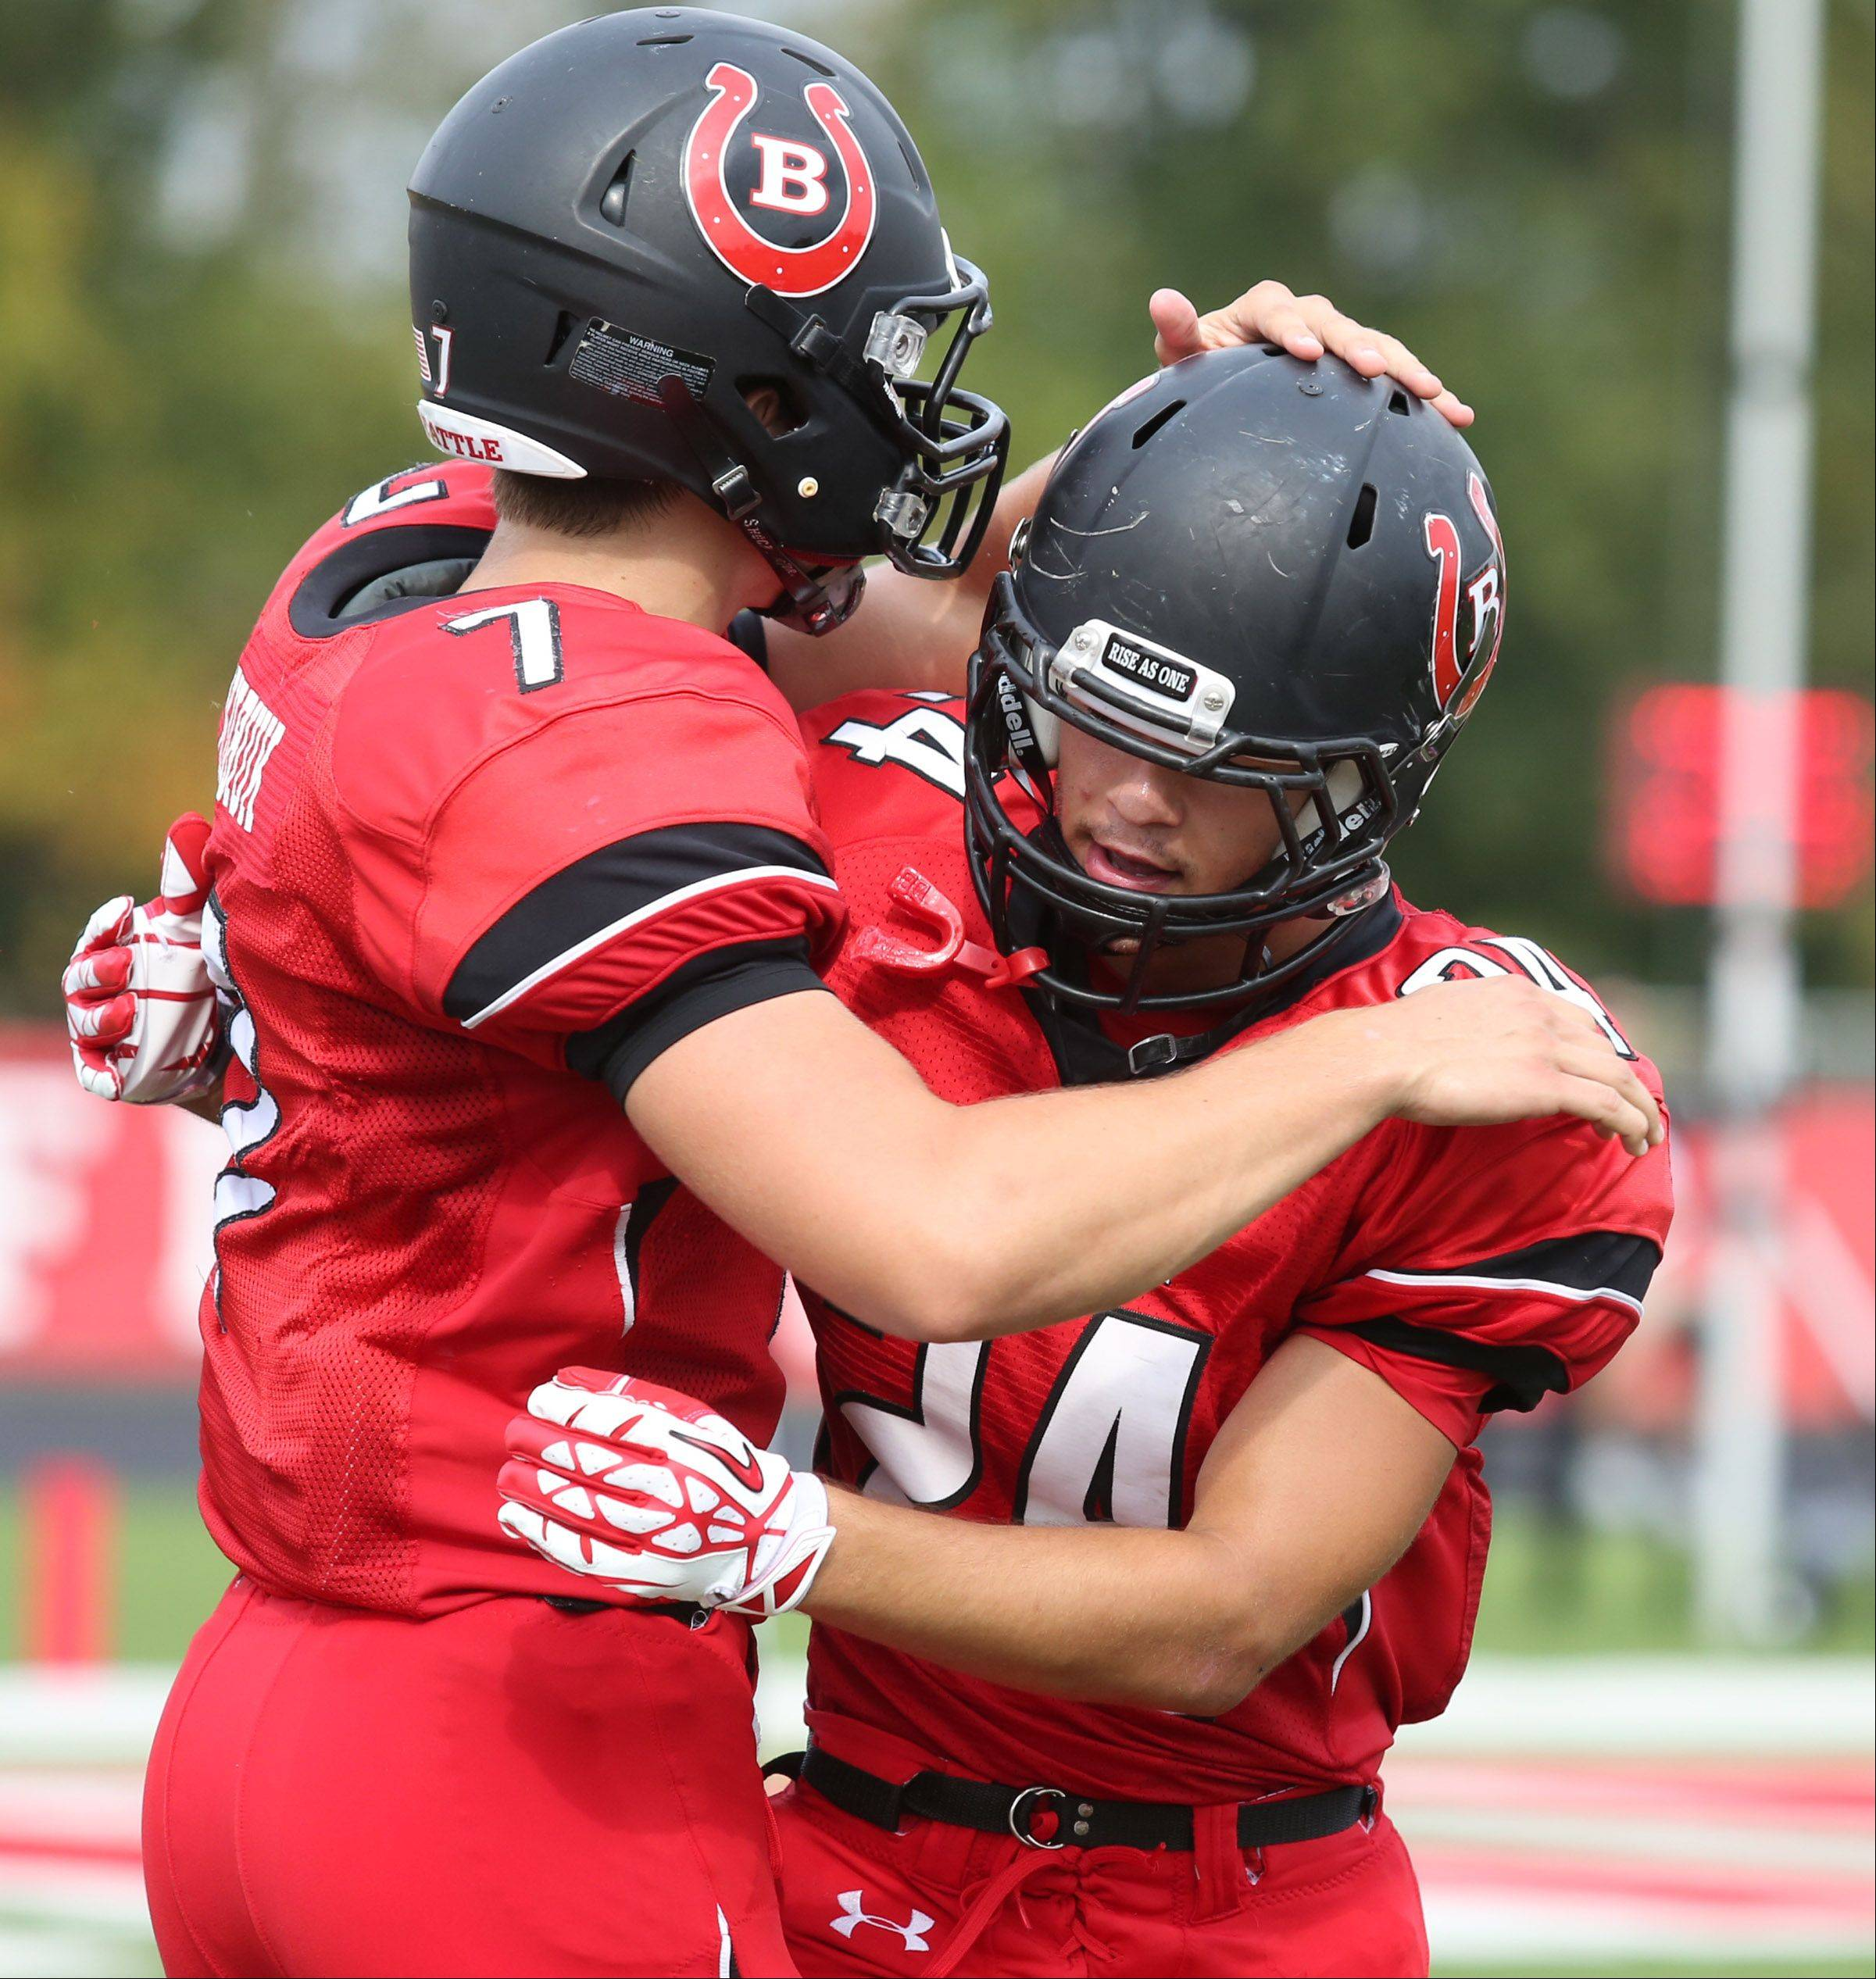 Barrington Dylan Bingham, right, gets a hand from quarterback Daniel Kubiuk after Bingham ran for a touchdown against Fremd at Barrington on Saturday, October 5.